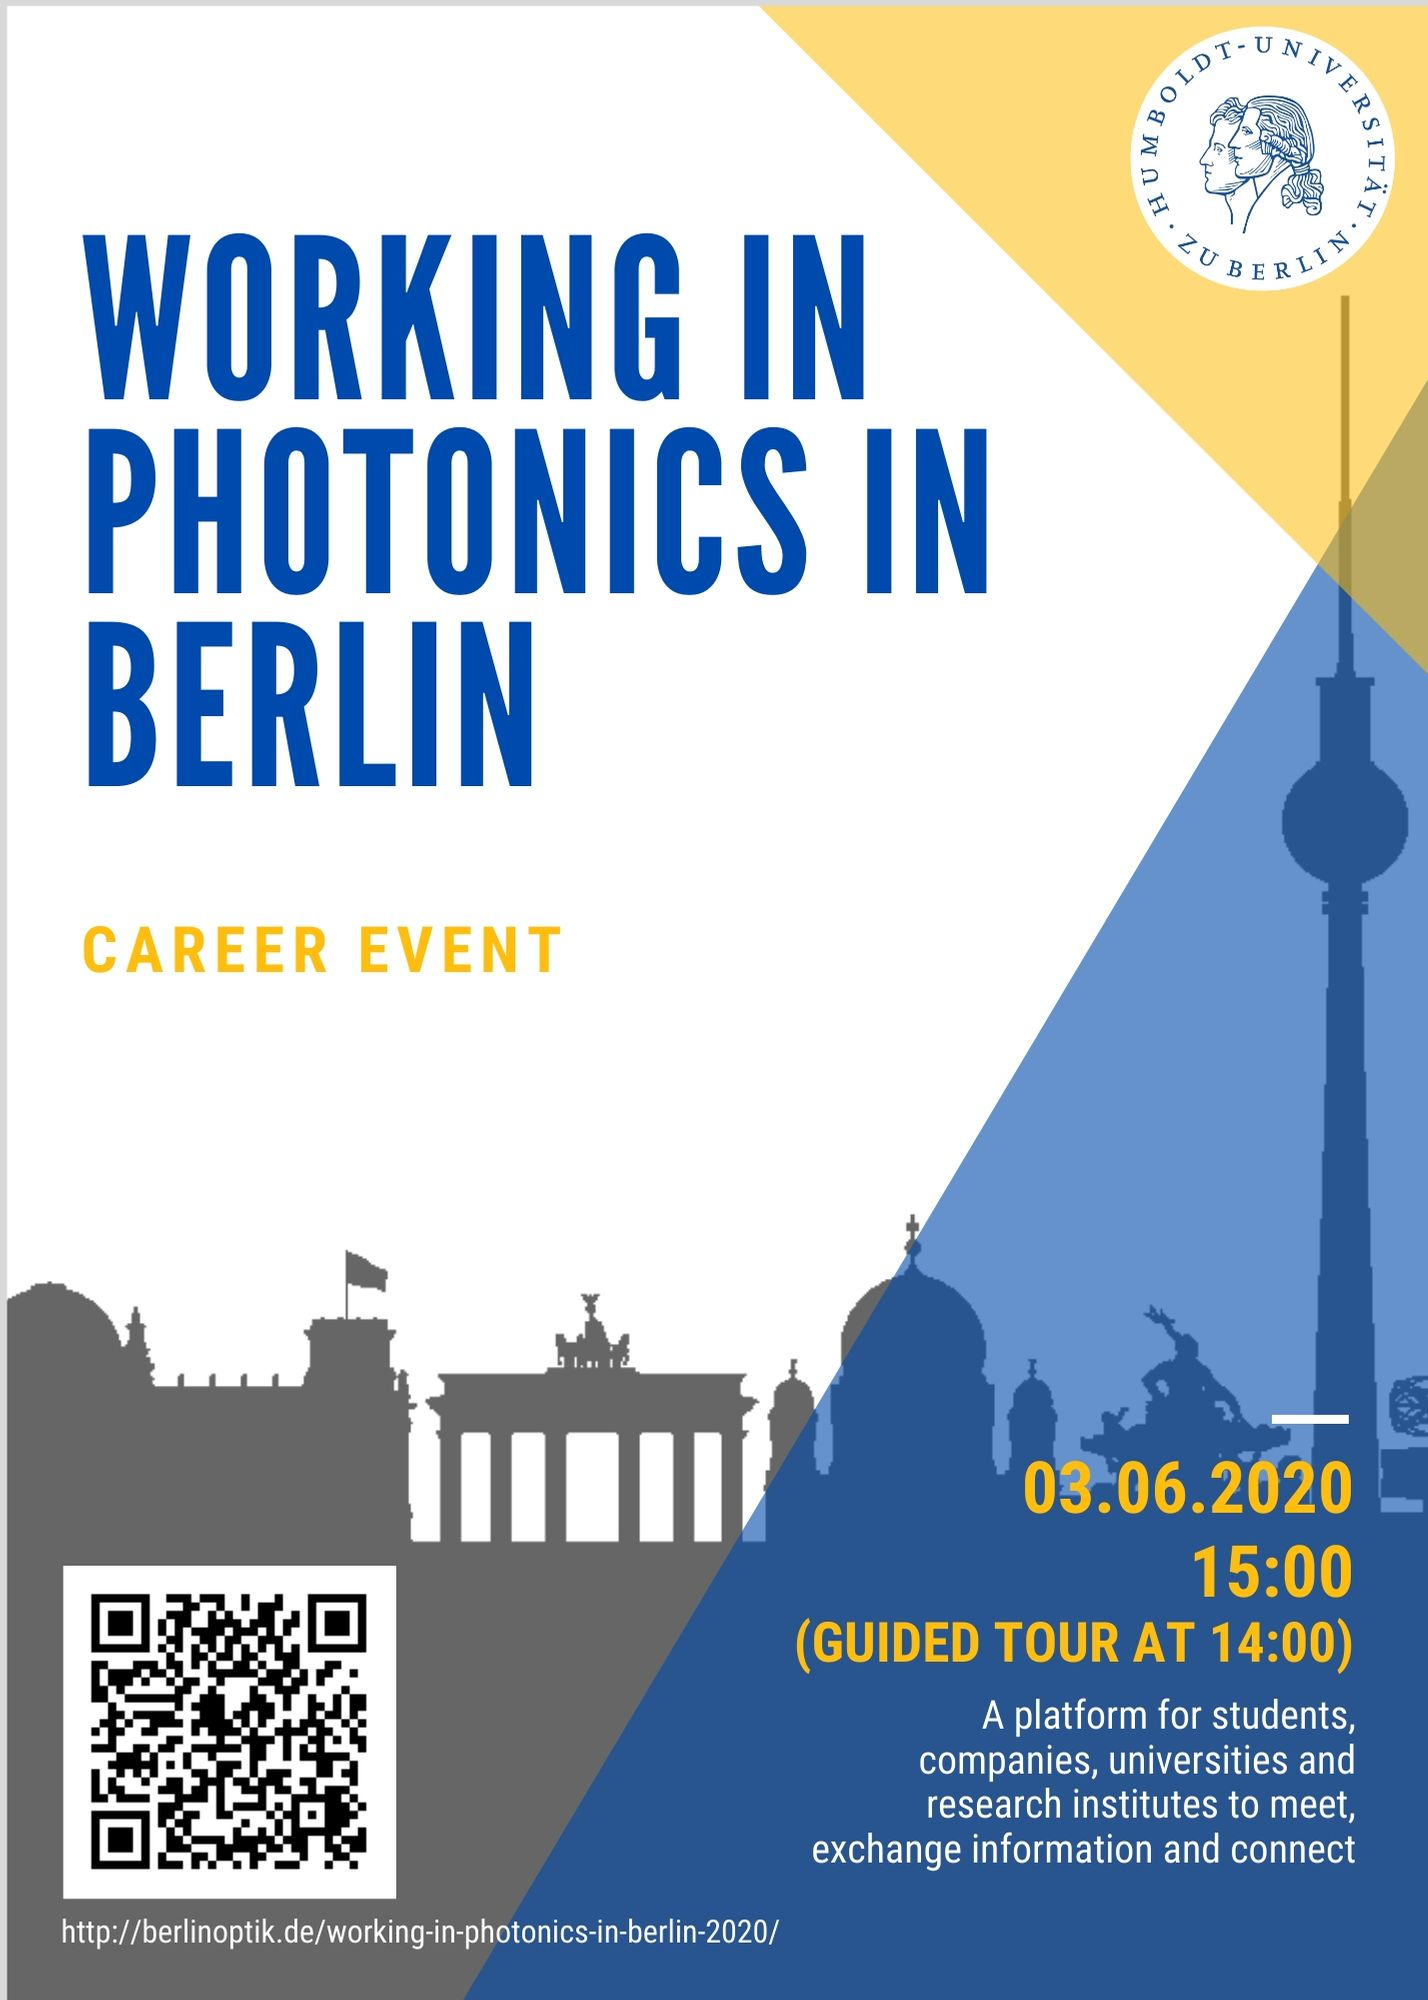 Working in Photonics in Berlin 2020